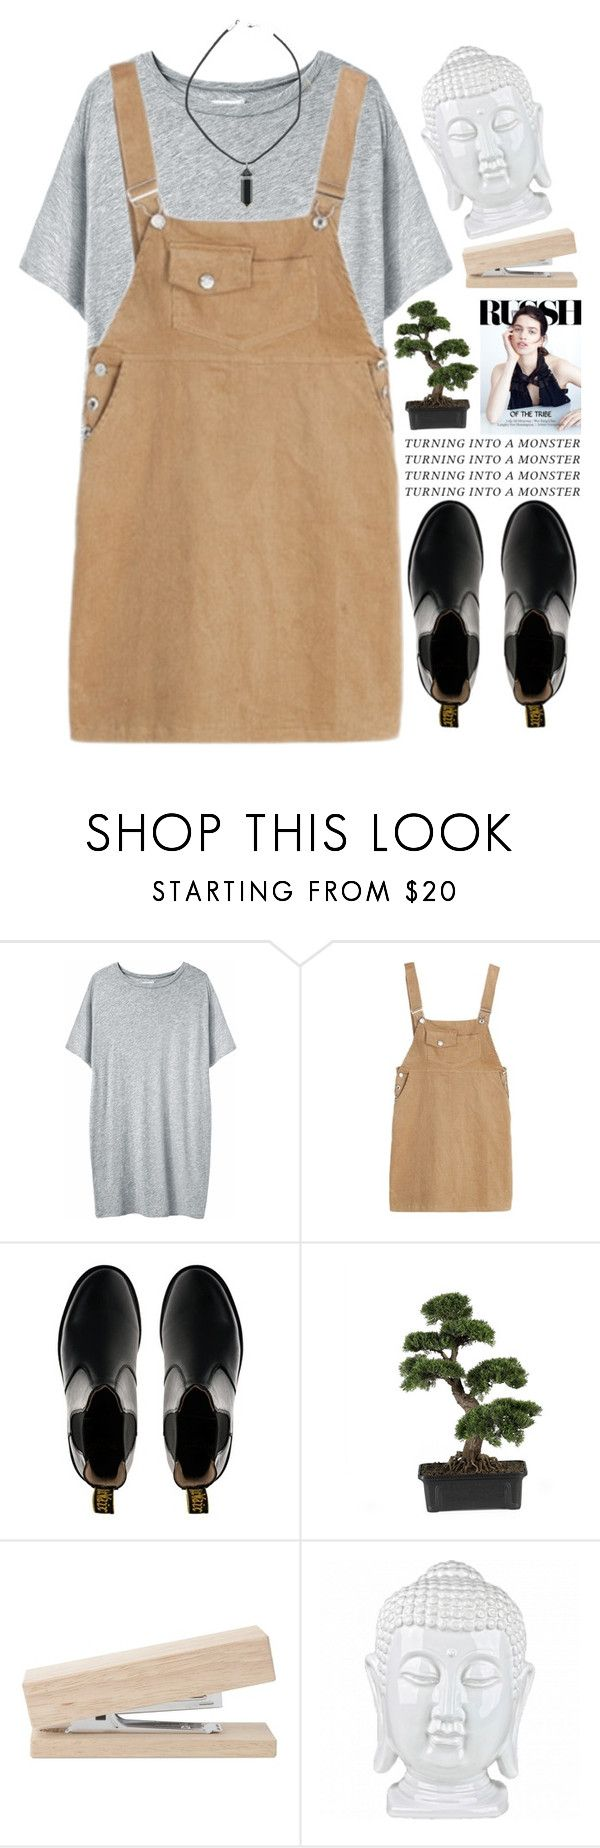 """""""Pogue."""" by sombrasdelcarax ❤ liked on Polyvore featuring moda, Organic by John Patrick, Dr. Martens y Nearly Natural"""